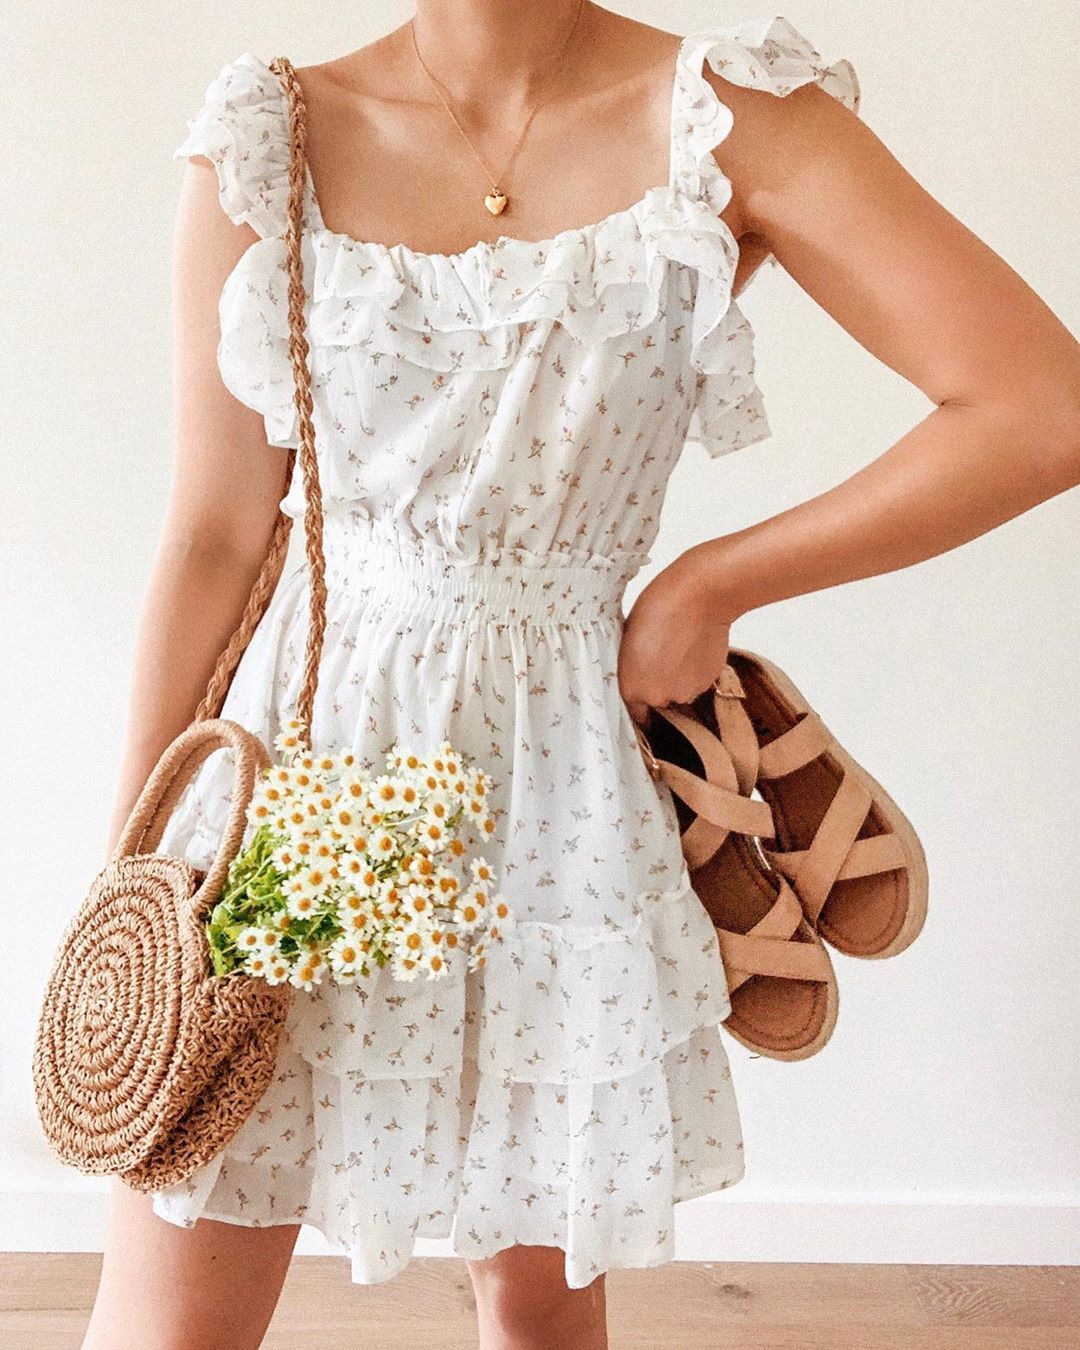 Breath Of Youth On Instagram Our Summer Love Dress Sunday Picnic Sandals Tap To Shop This Look Fashion Picnic Outfits Romantic Outfit [ 1350 x 1080 Pixel ]